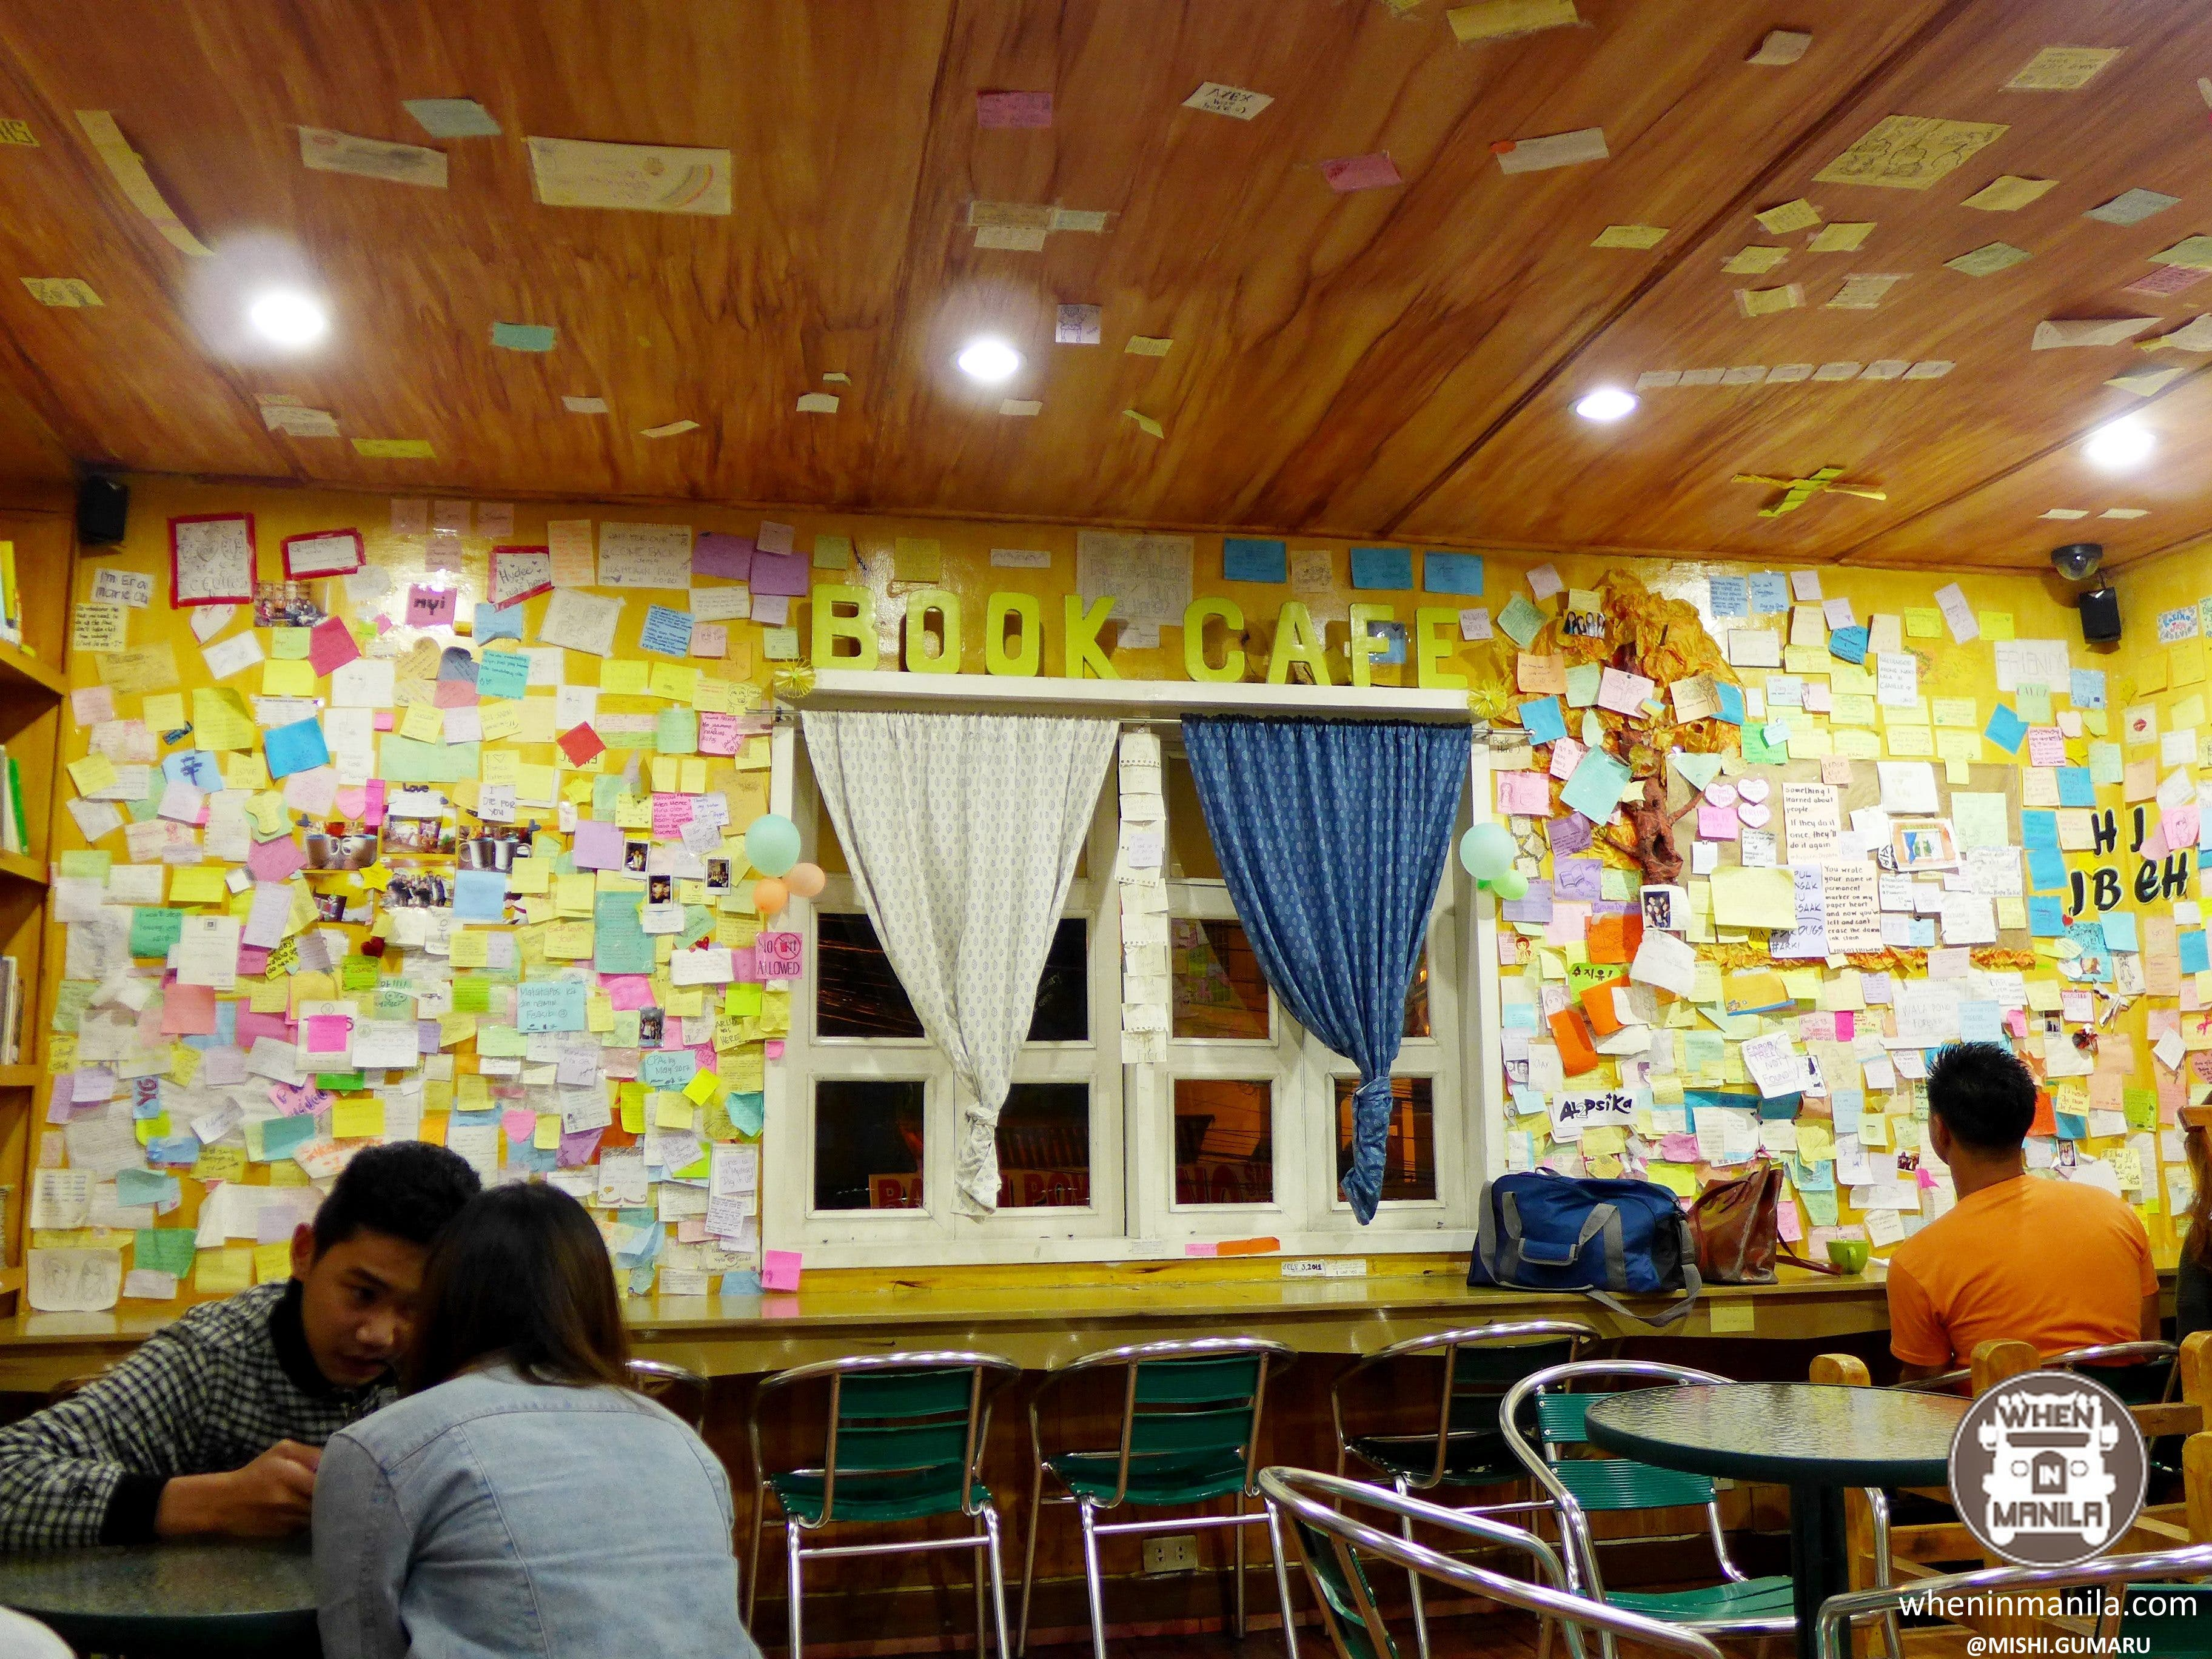 5-Cool-And-Quirky-Cafes-You-Must-Check-Out-When-In-Baguio4